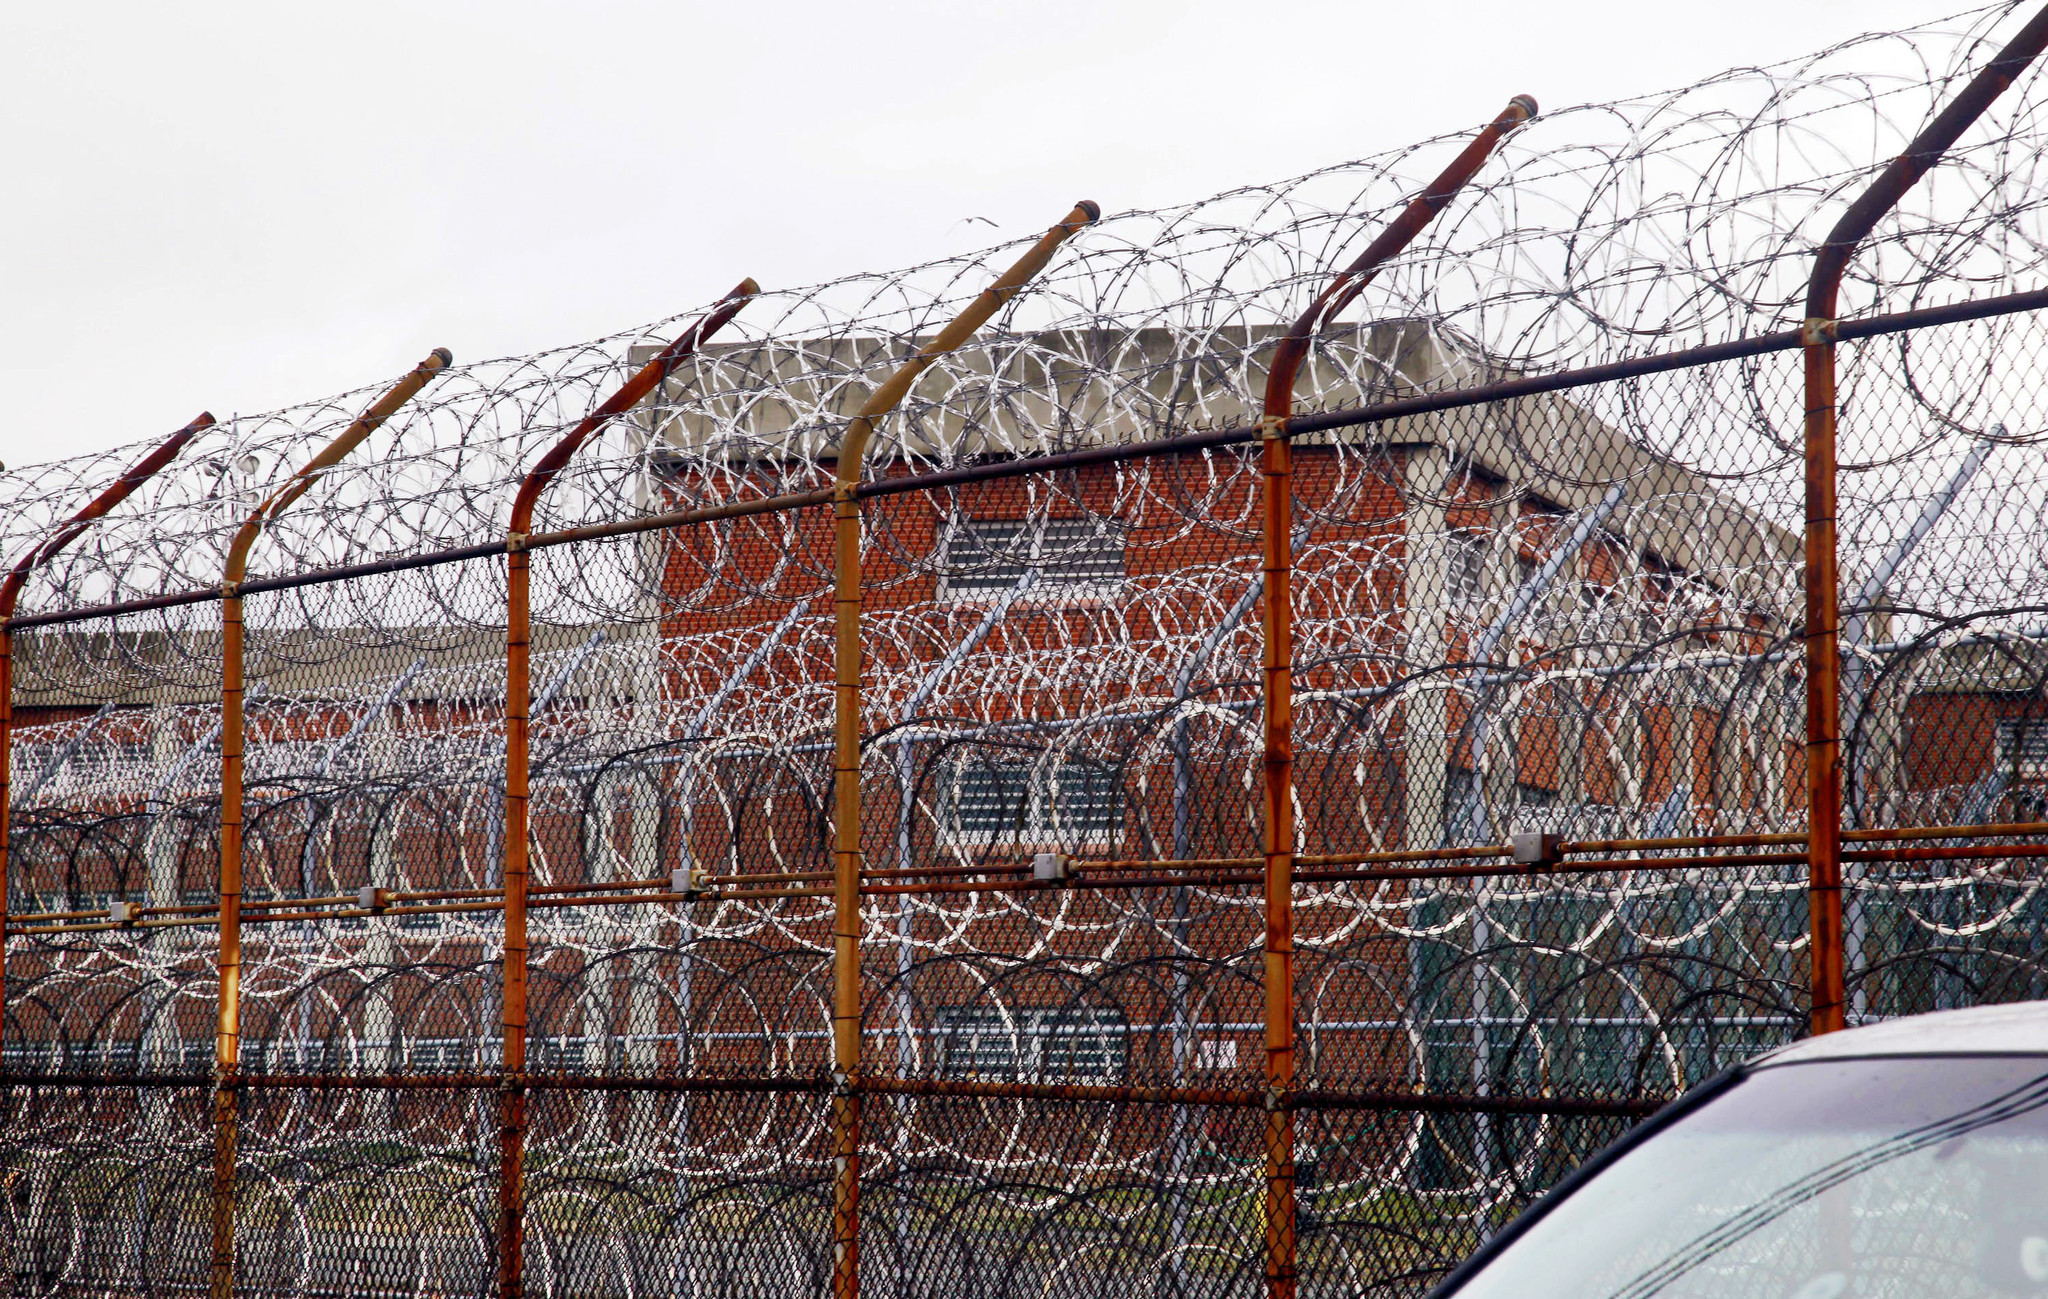 Manhattan judge rules 16 'vulnerable' city inmates will be released due to coronavirus concerns on Rikers Island